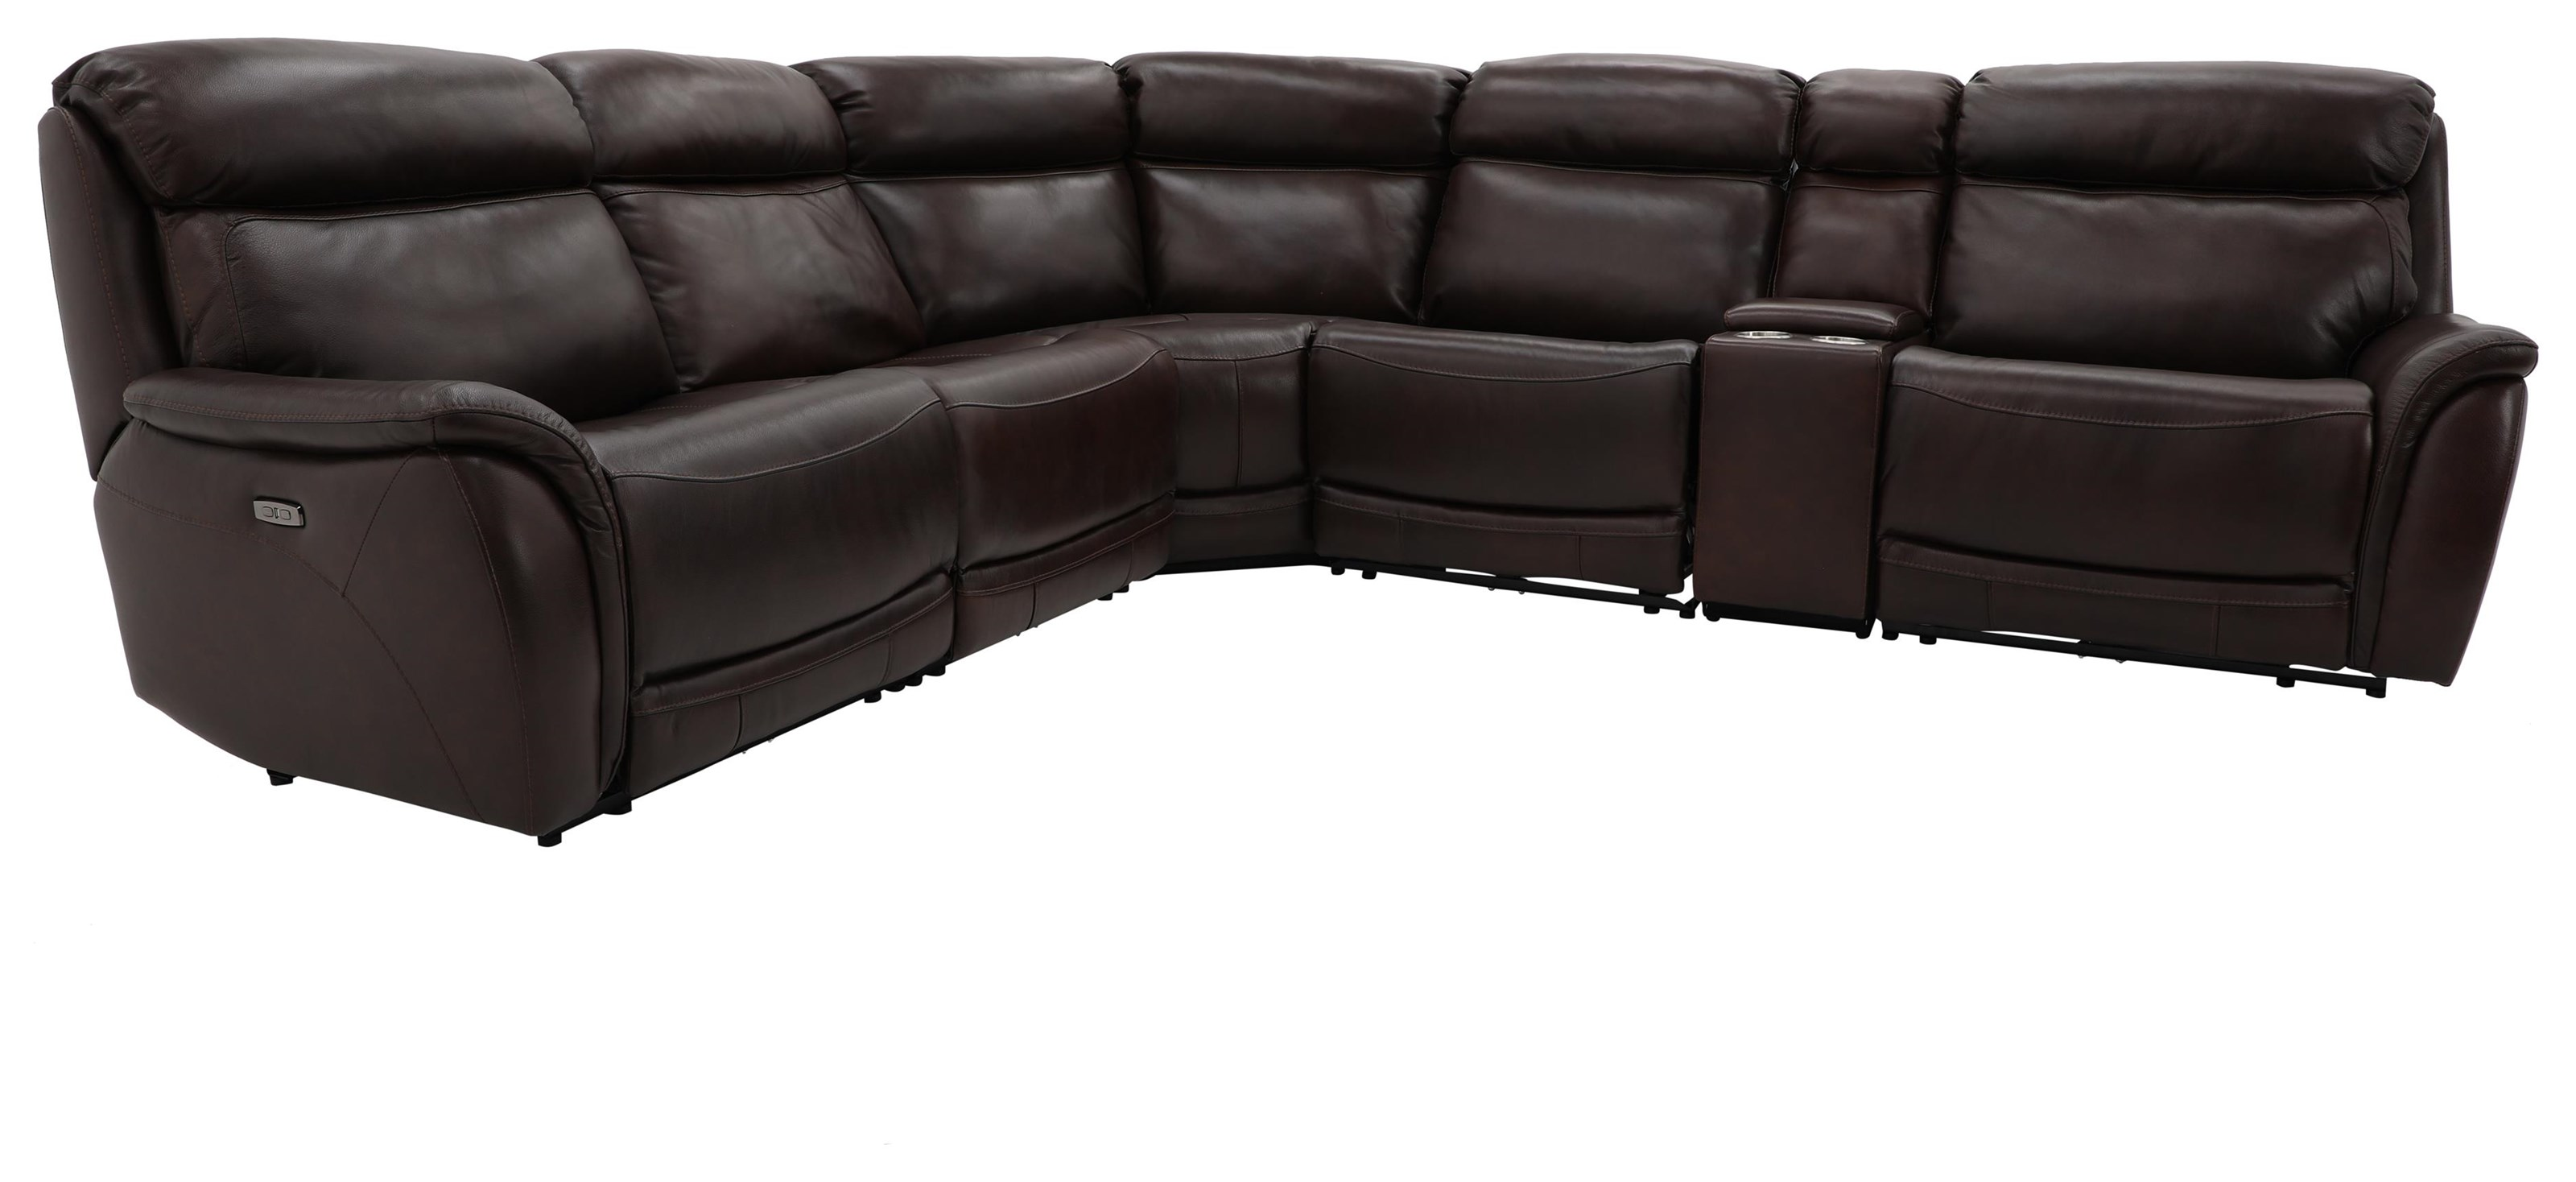 Jaxson LEATHER RECLINING SECTIONAL W/ PWR HEADRESTS by K.C. at Walker's Furniture